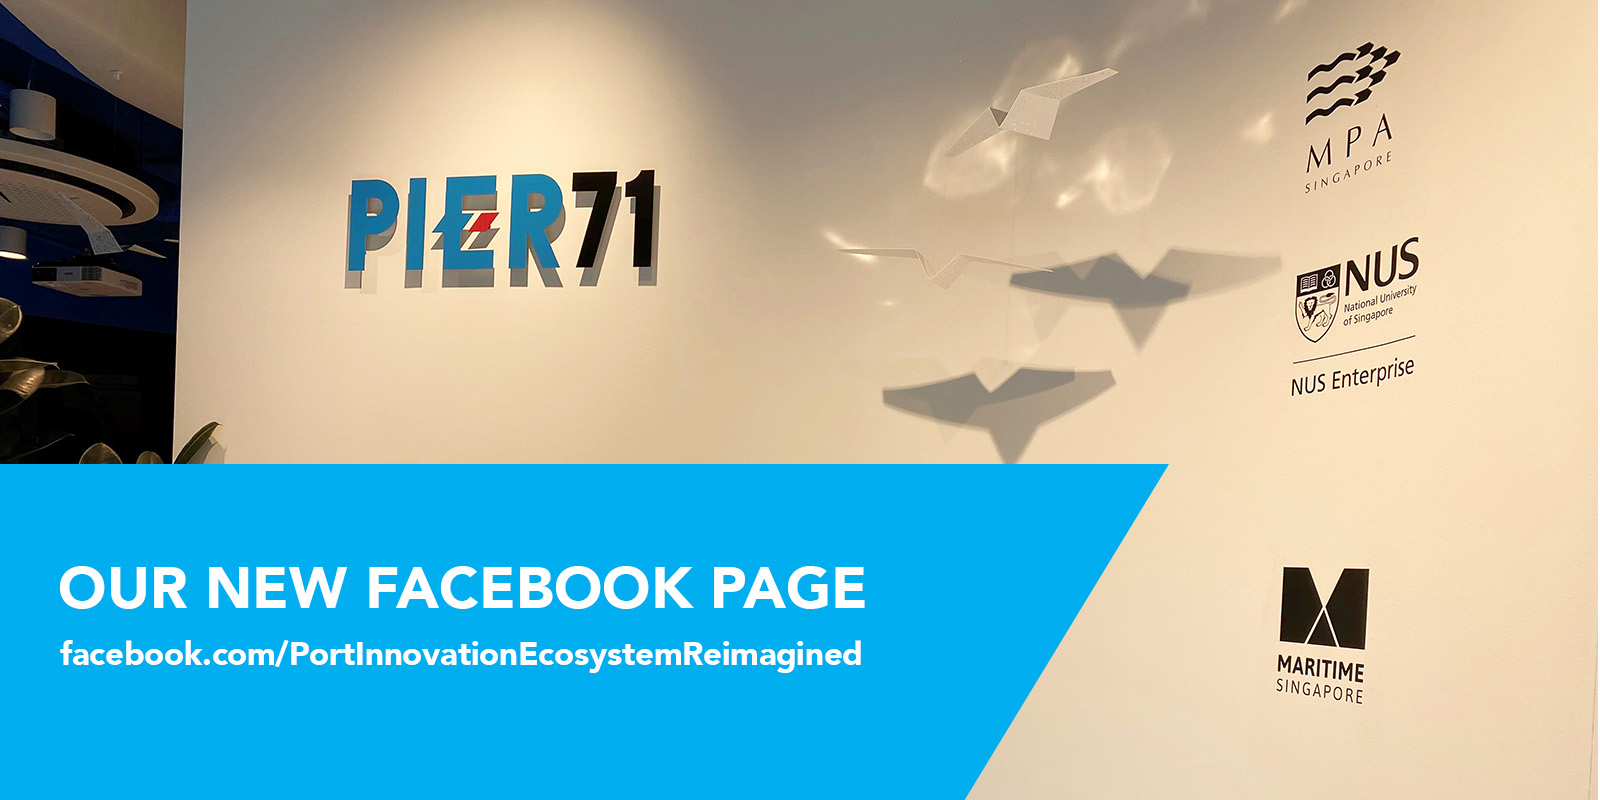 PIER71 has a new Facebook page!